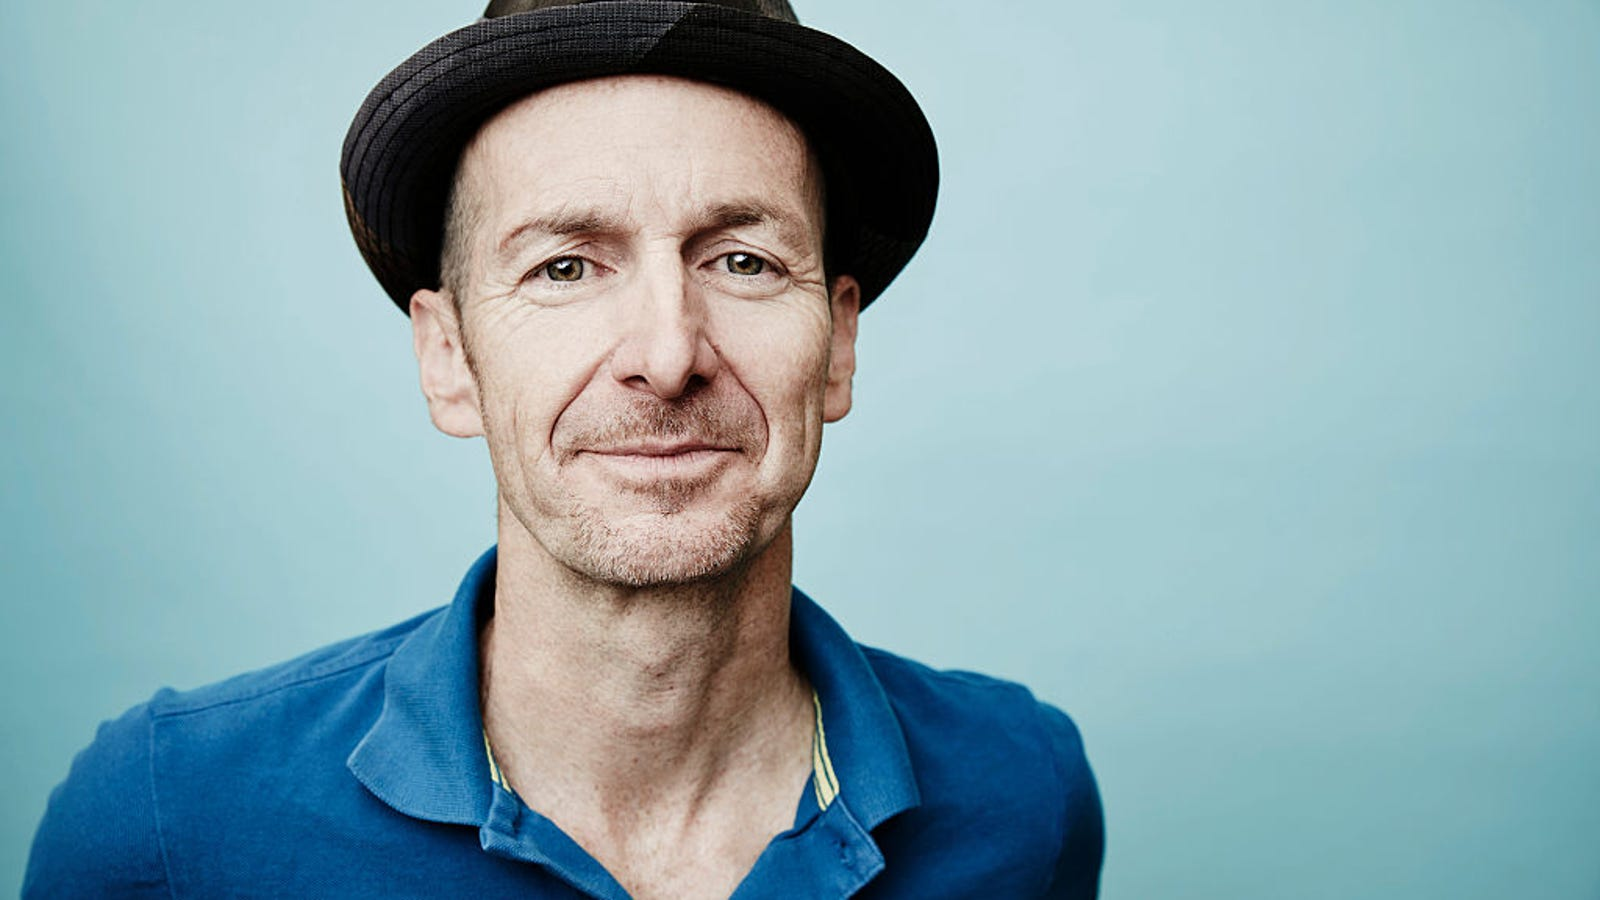 Denis O'Hare finds zombies boring and Woody Allen creatively